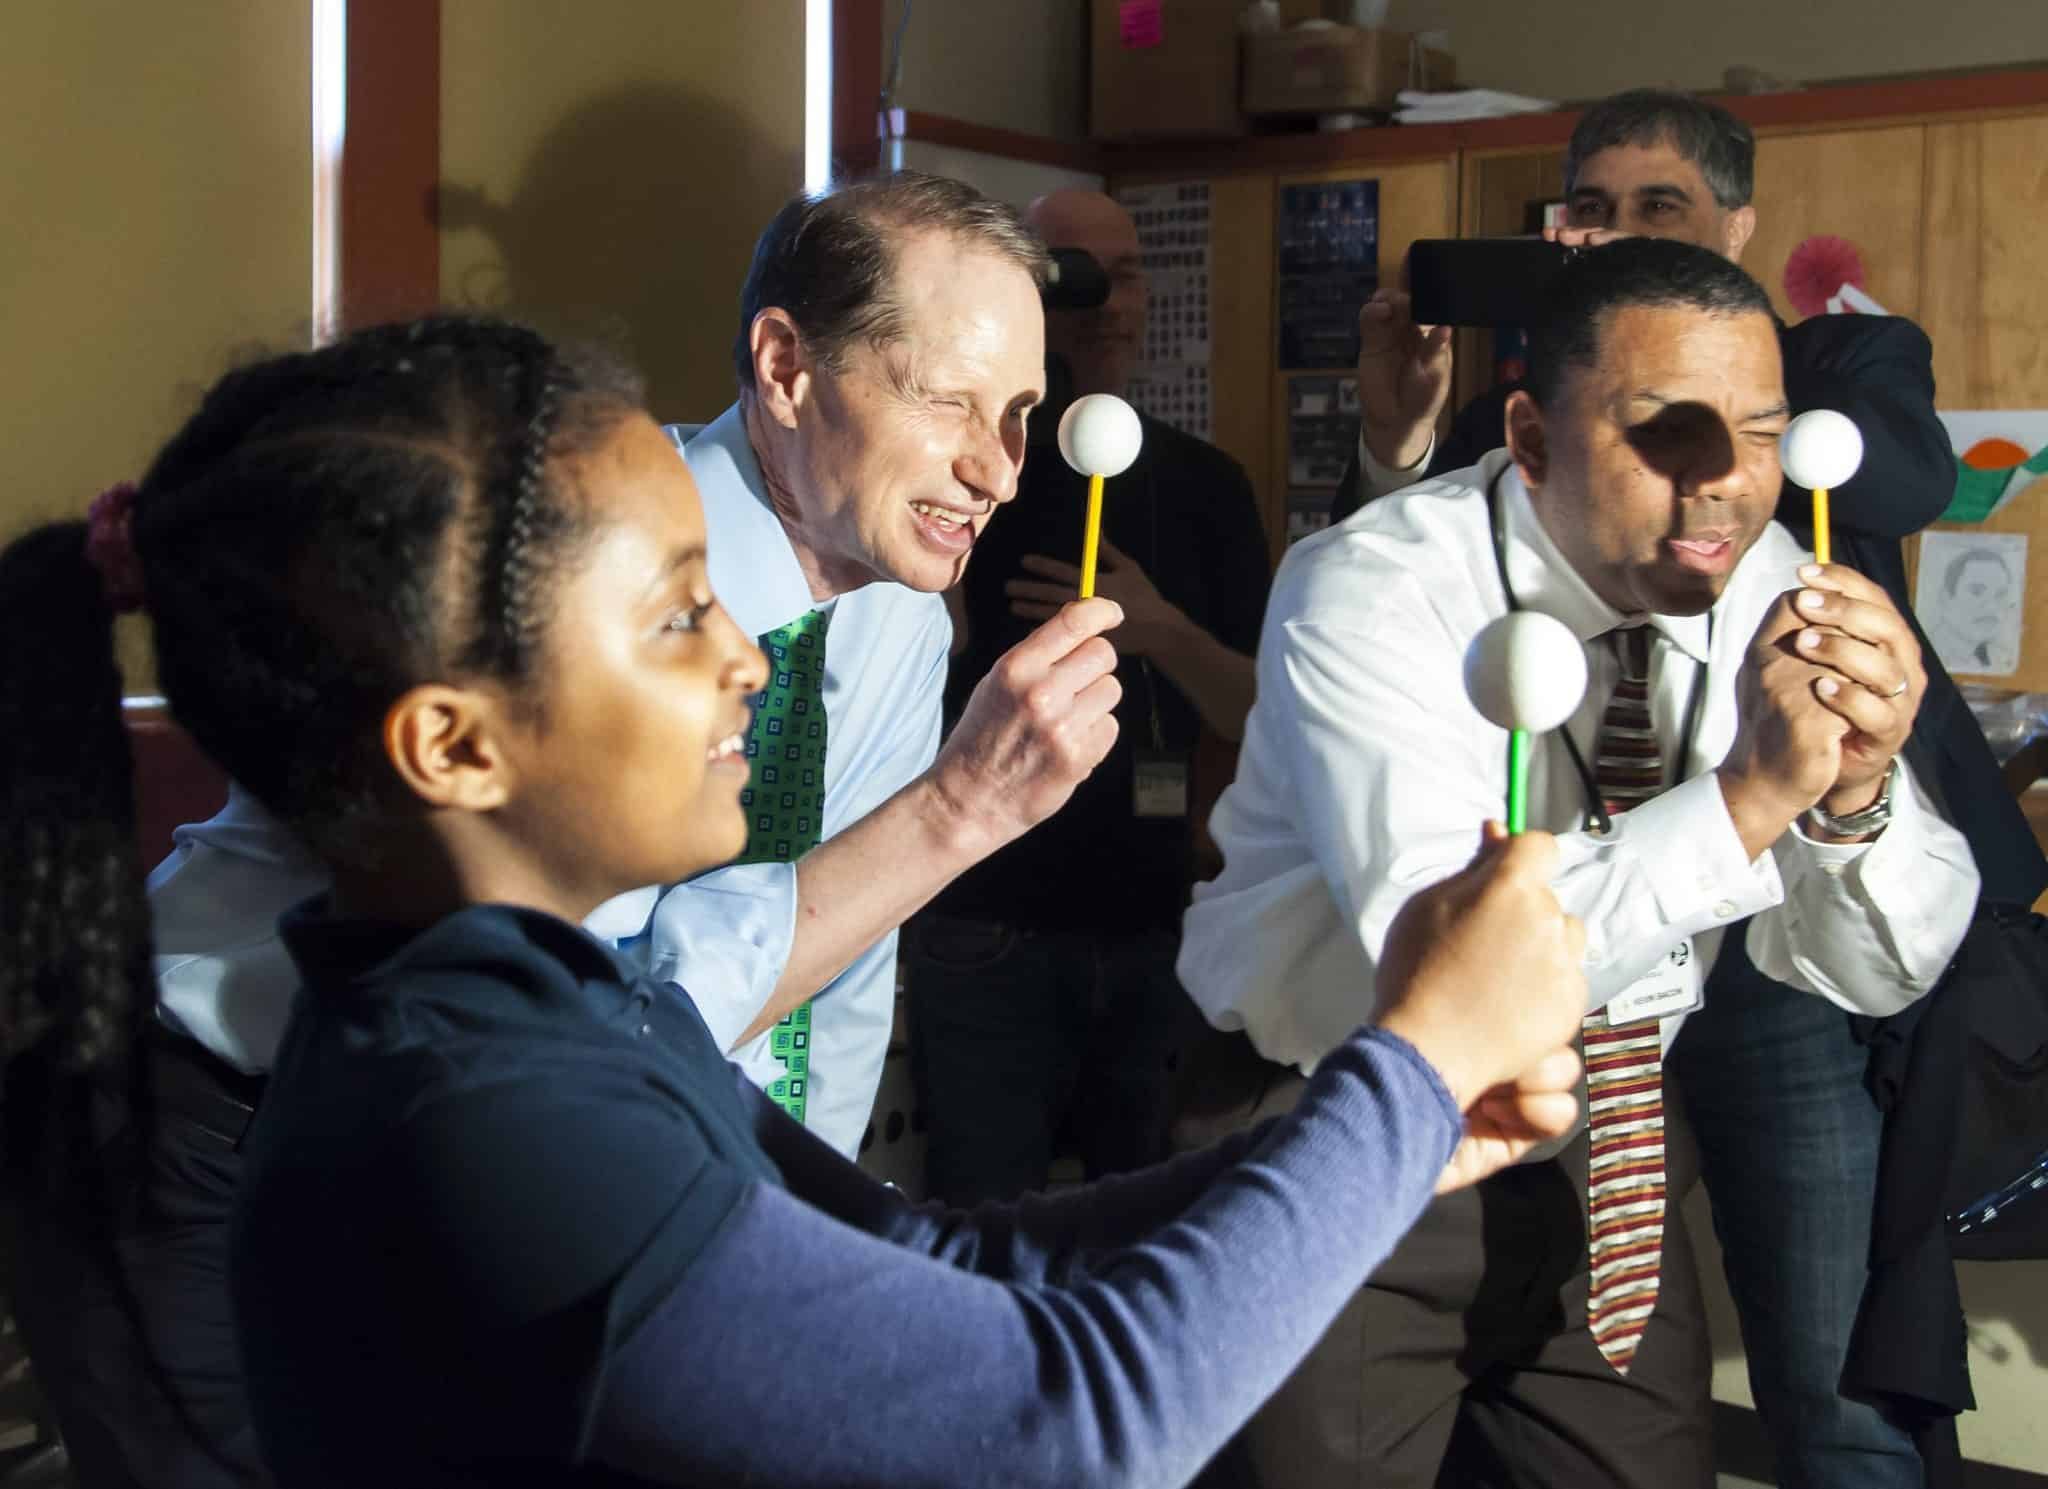 Boise-Eliot/Humboldt principal Kevin Bacon and students share their excitement for STEAM learning with Senator Ron Wyden. (Photo by Richard Martin of Portland Public Schools)